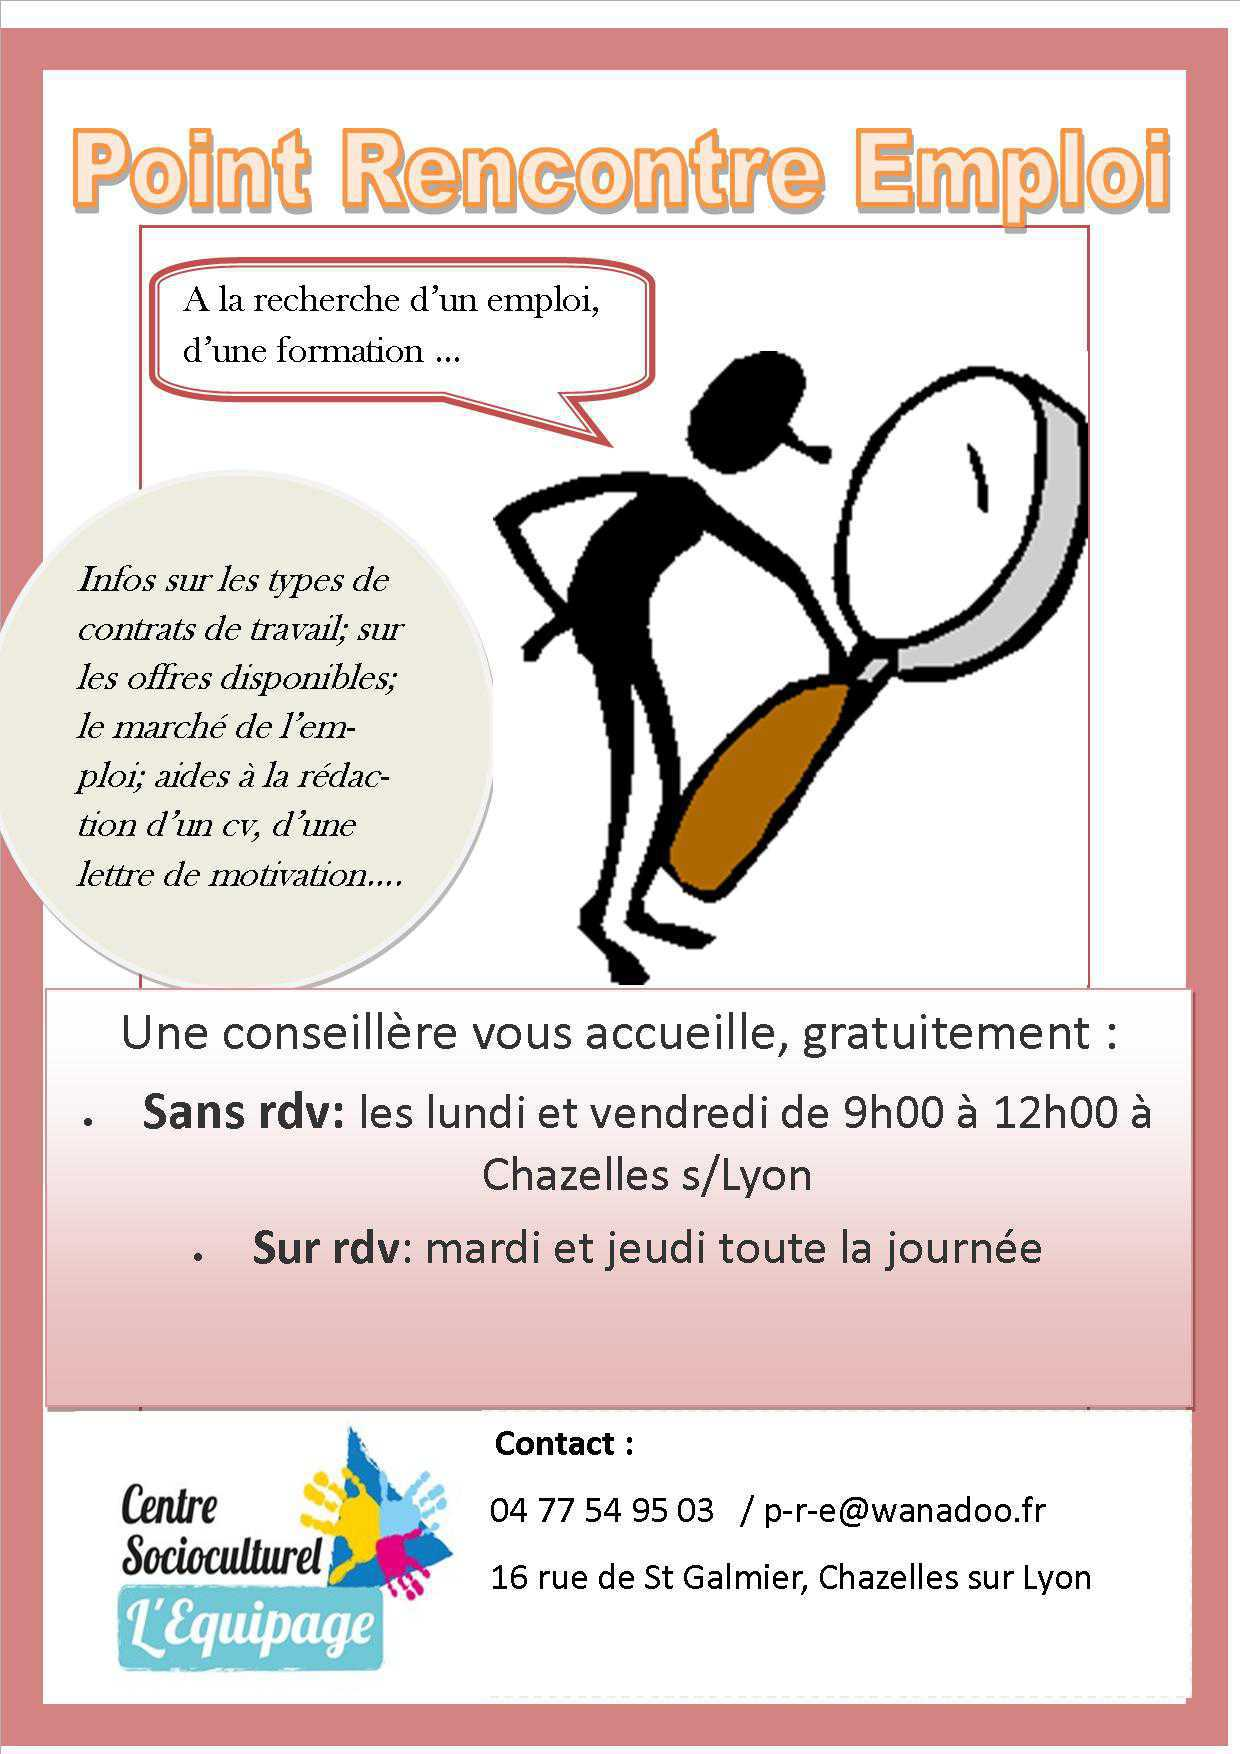 affiche-point-rencontre-emploi1